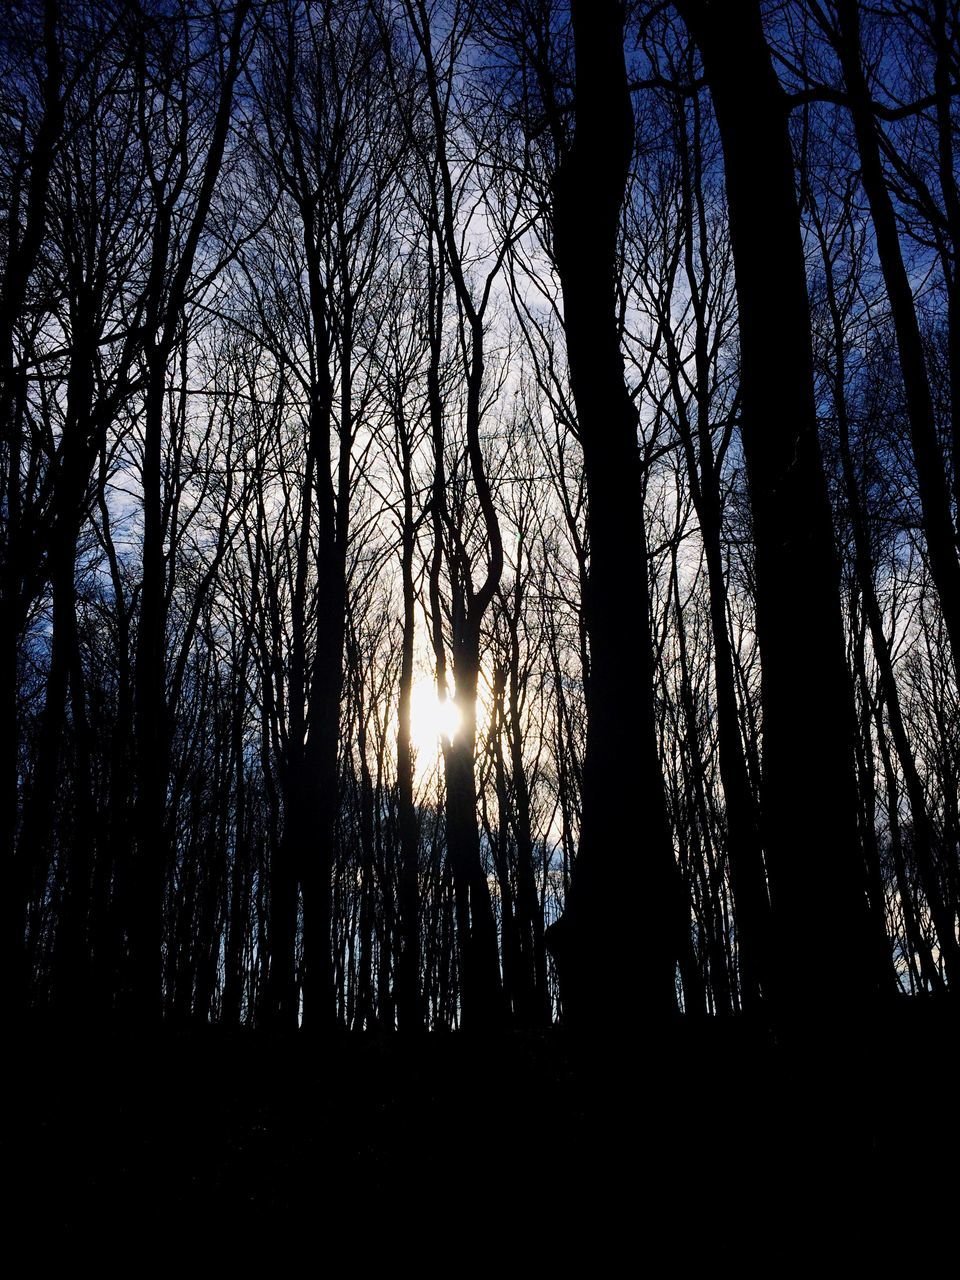 Silhouette Trees On Field In Forest